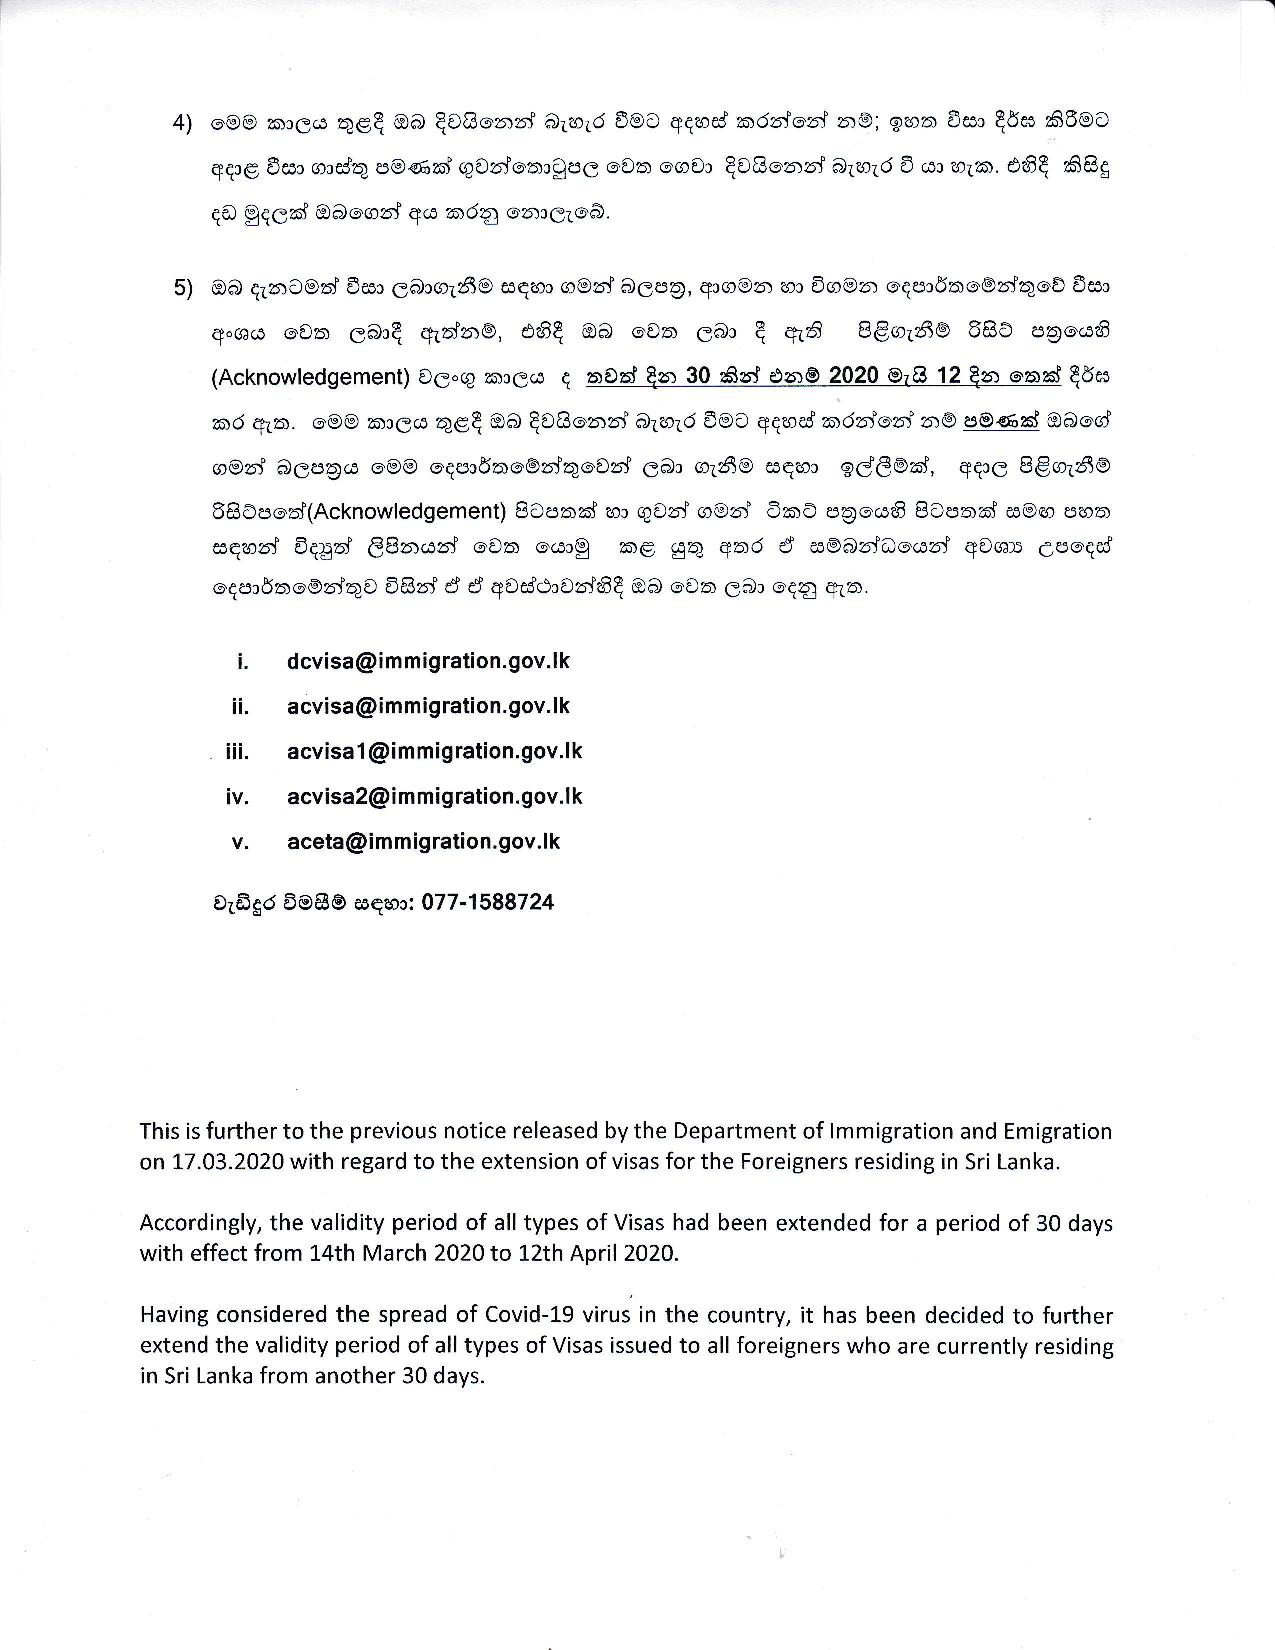 Department of Immigration and Emigration page 002